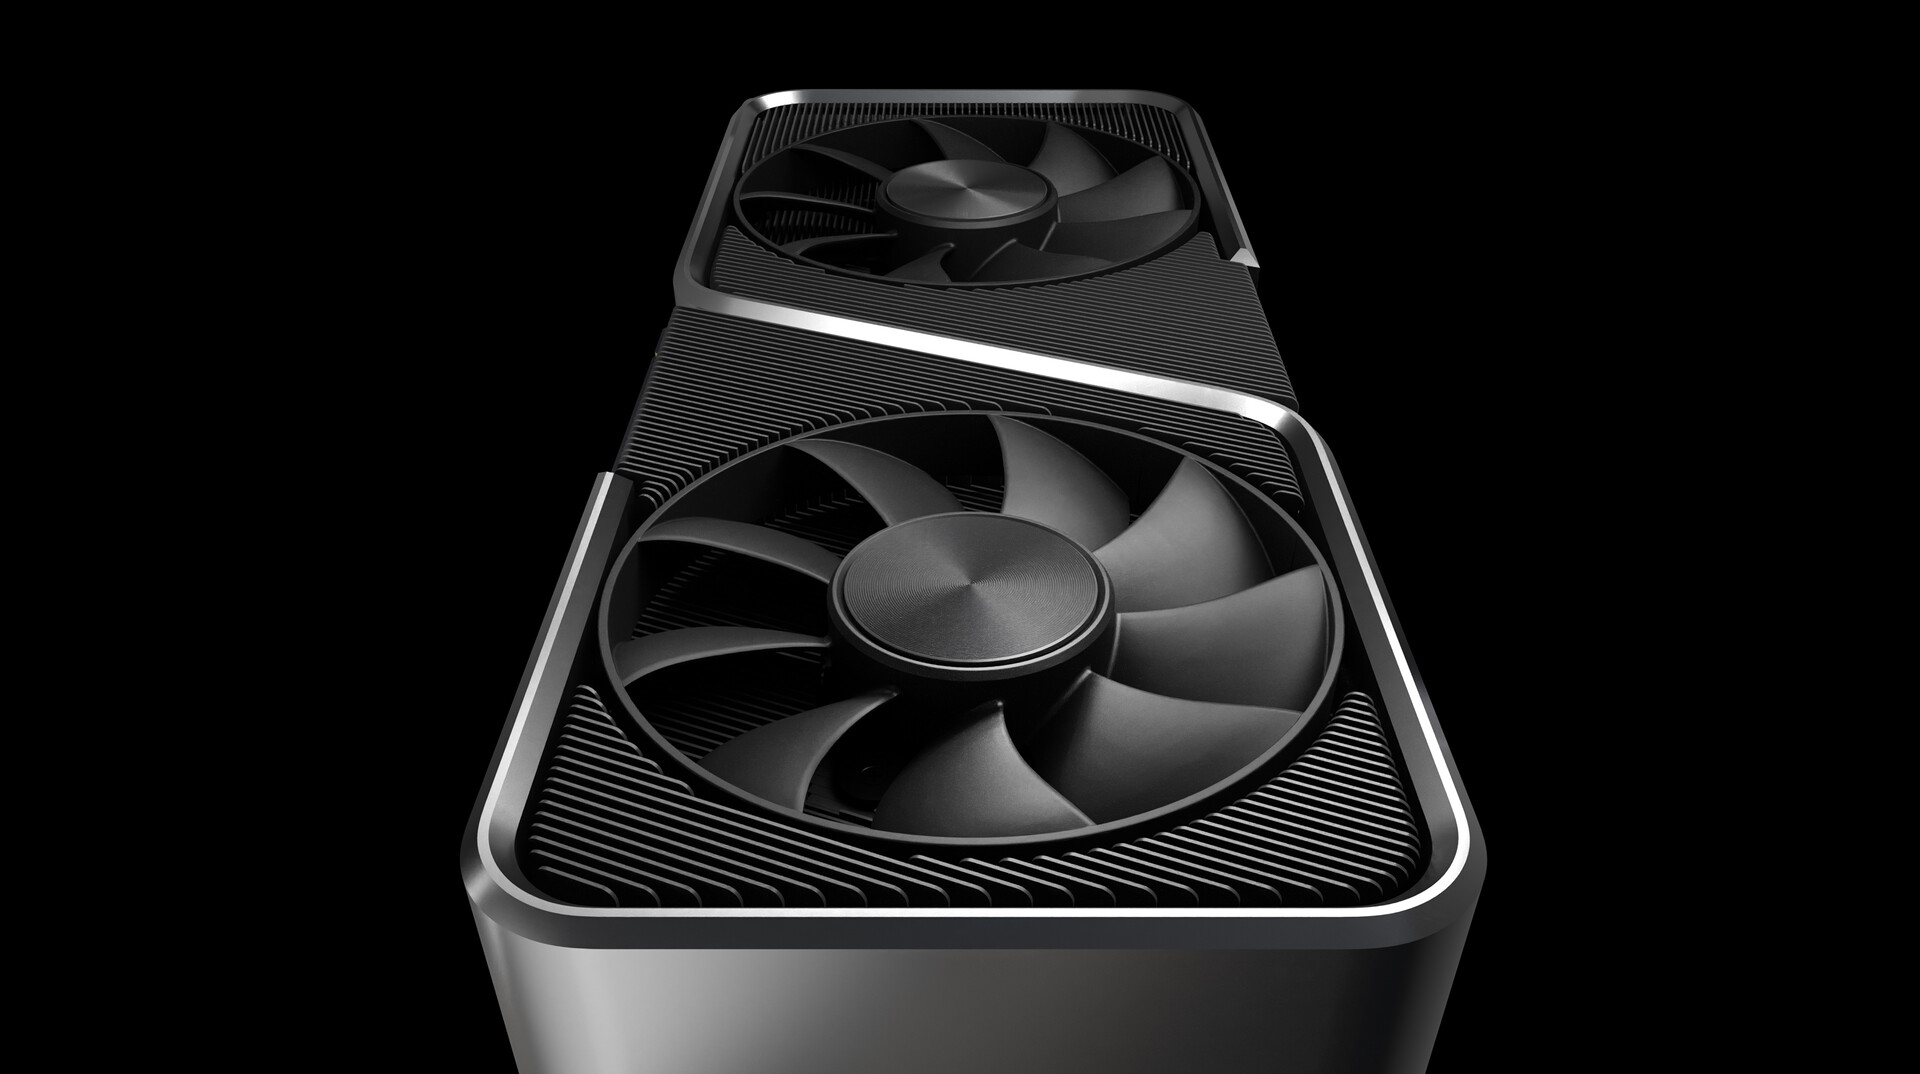 The Nvidia Geforce Rtx 3080 Is An Ethereum Mining Monster Overclocked Cards Deliver Nearly 100 Mh S Double The Radeon Rx 5700 Xt Notebookcheck Net News Check mining profitability of various crypto coins. the nvidia geforce rtx 3080 is an